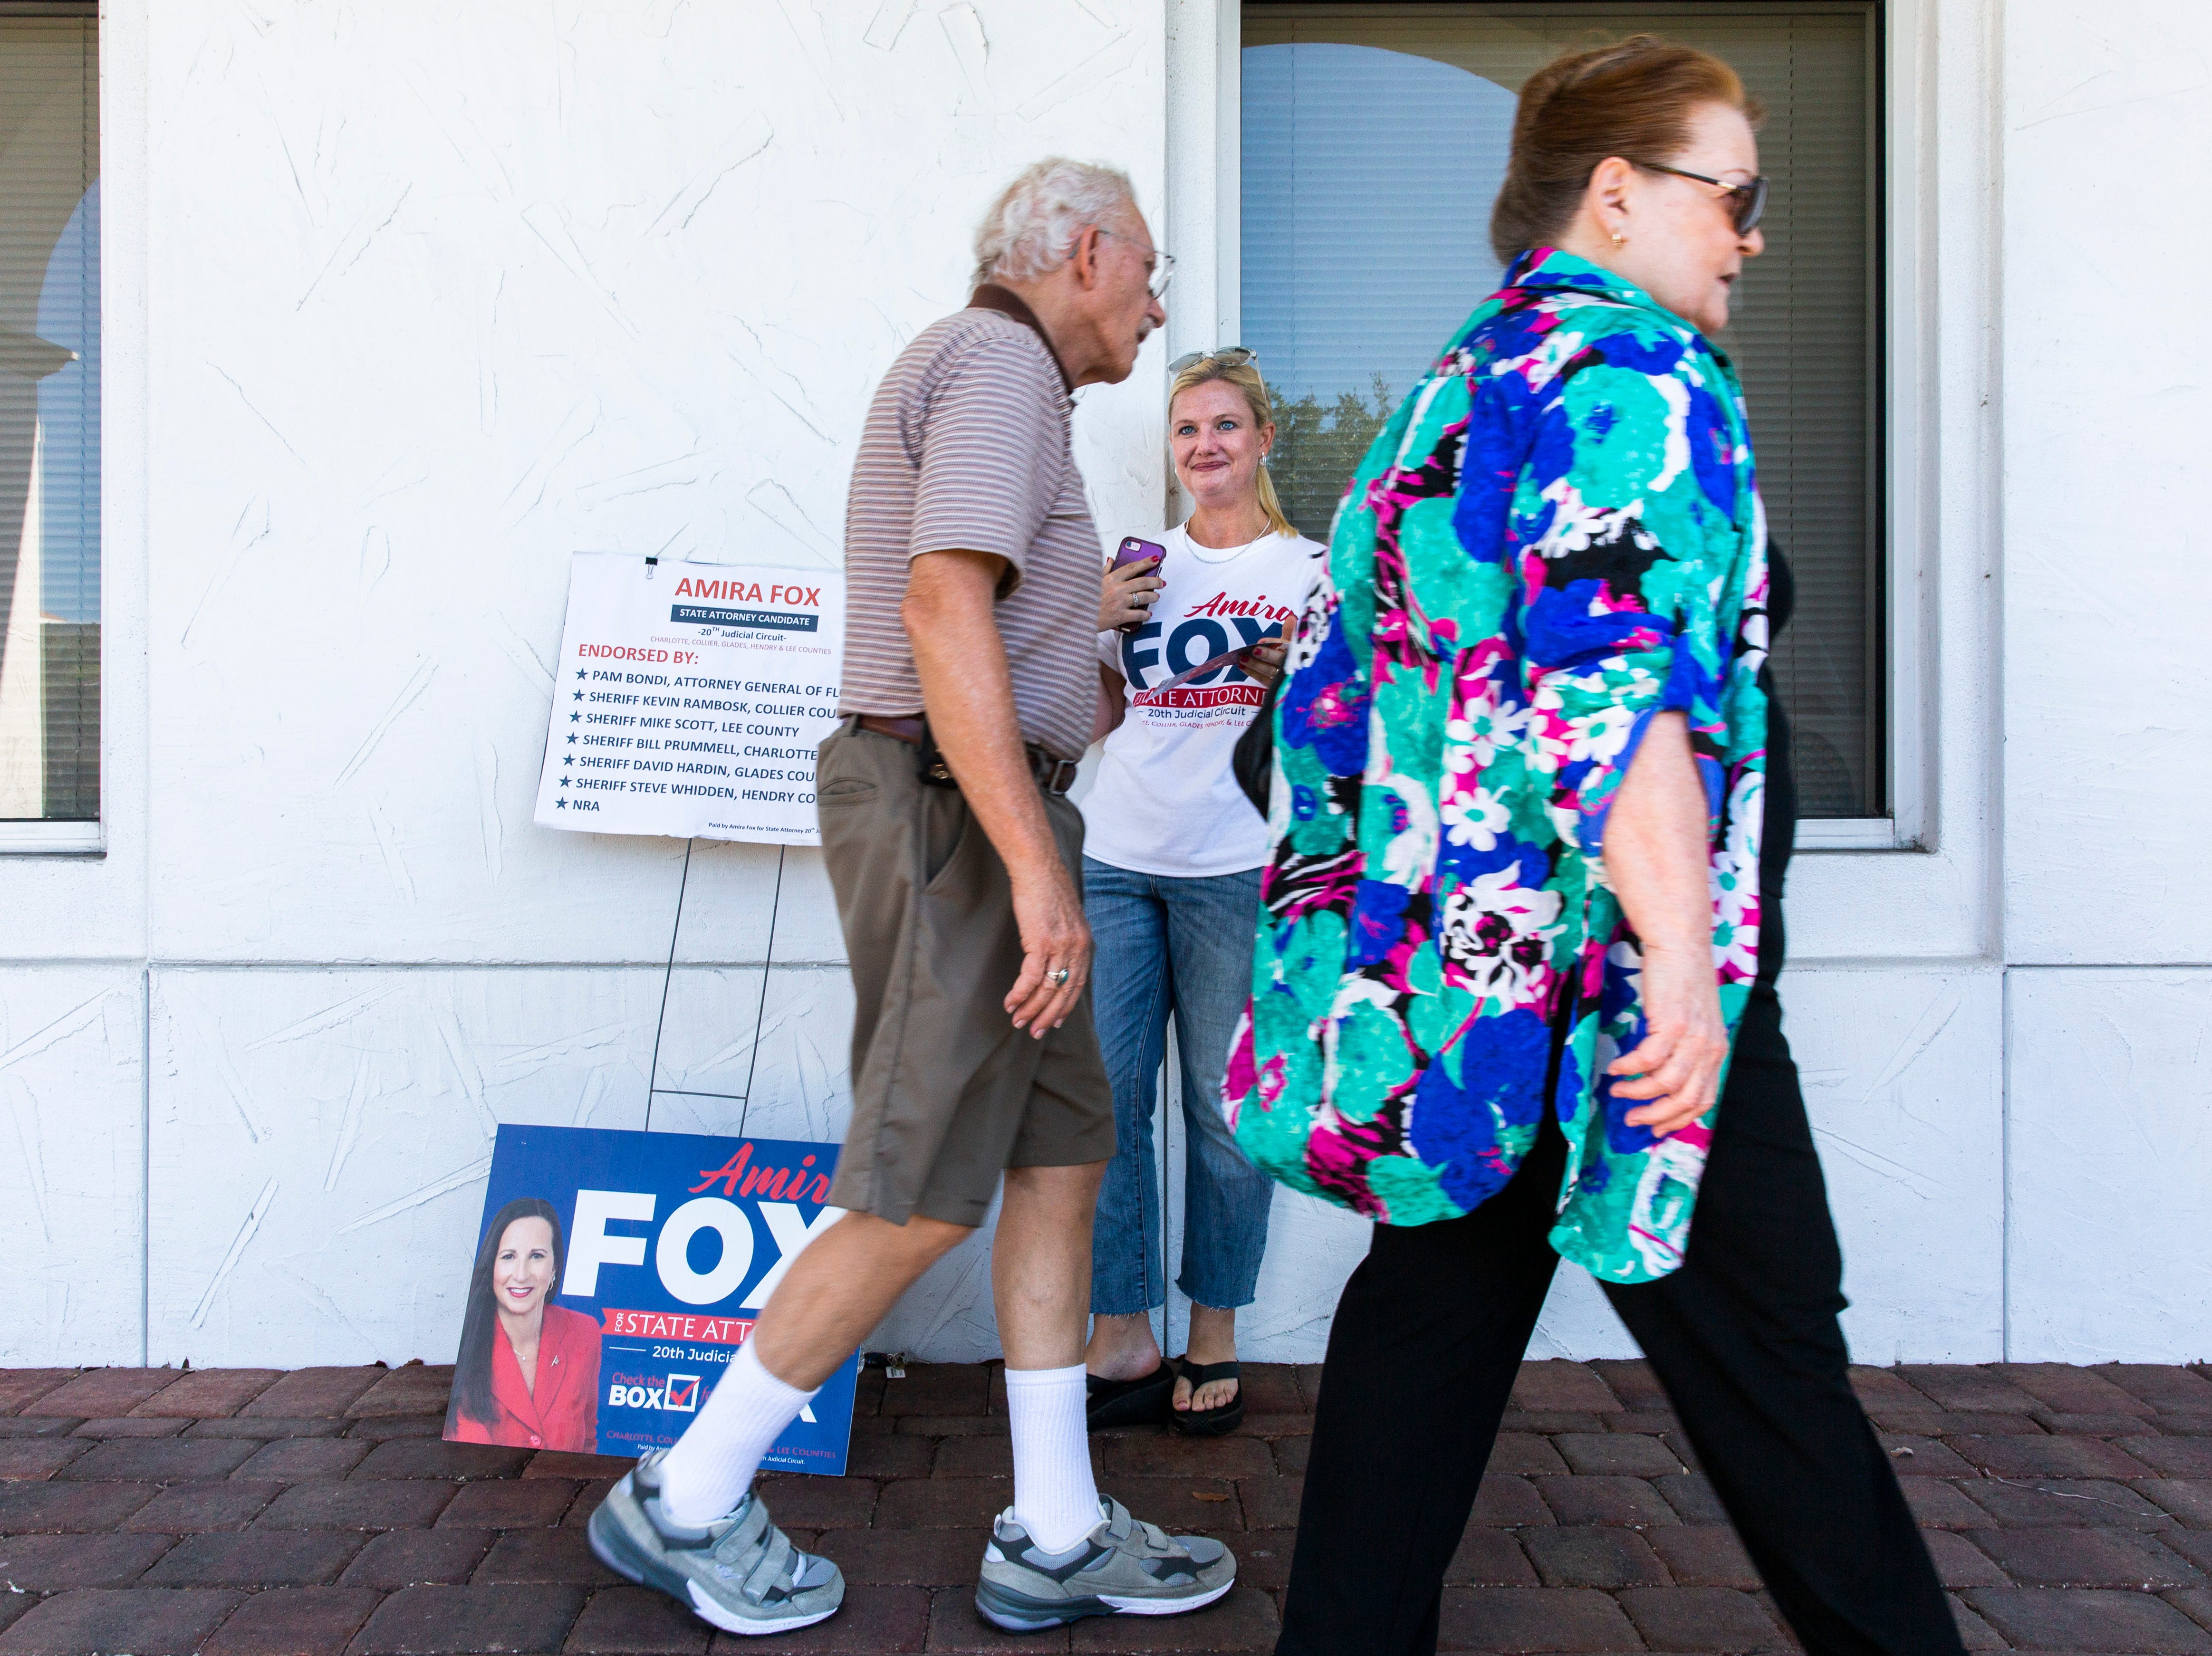 Kate Rumley encourages voters on their way in to cast their ballot for Amira Fox at the Collier County Public Library Headquarters in North Naples on Tuesday, August 28, 2018.